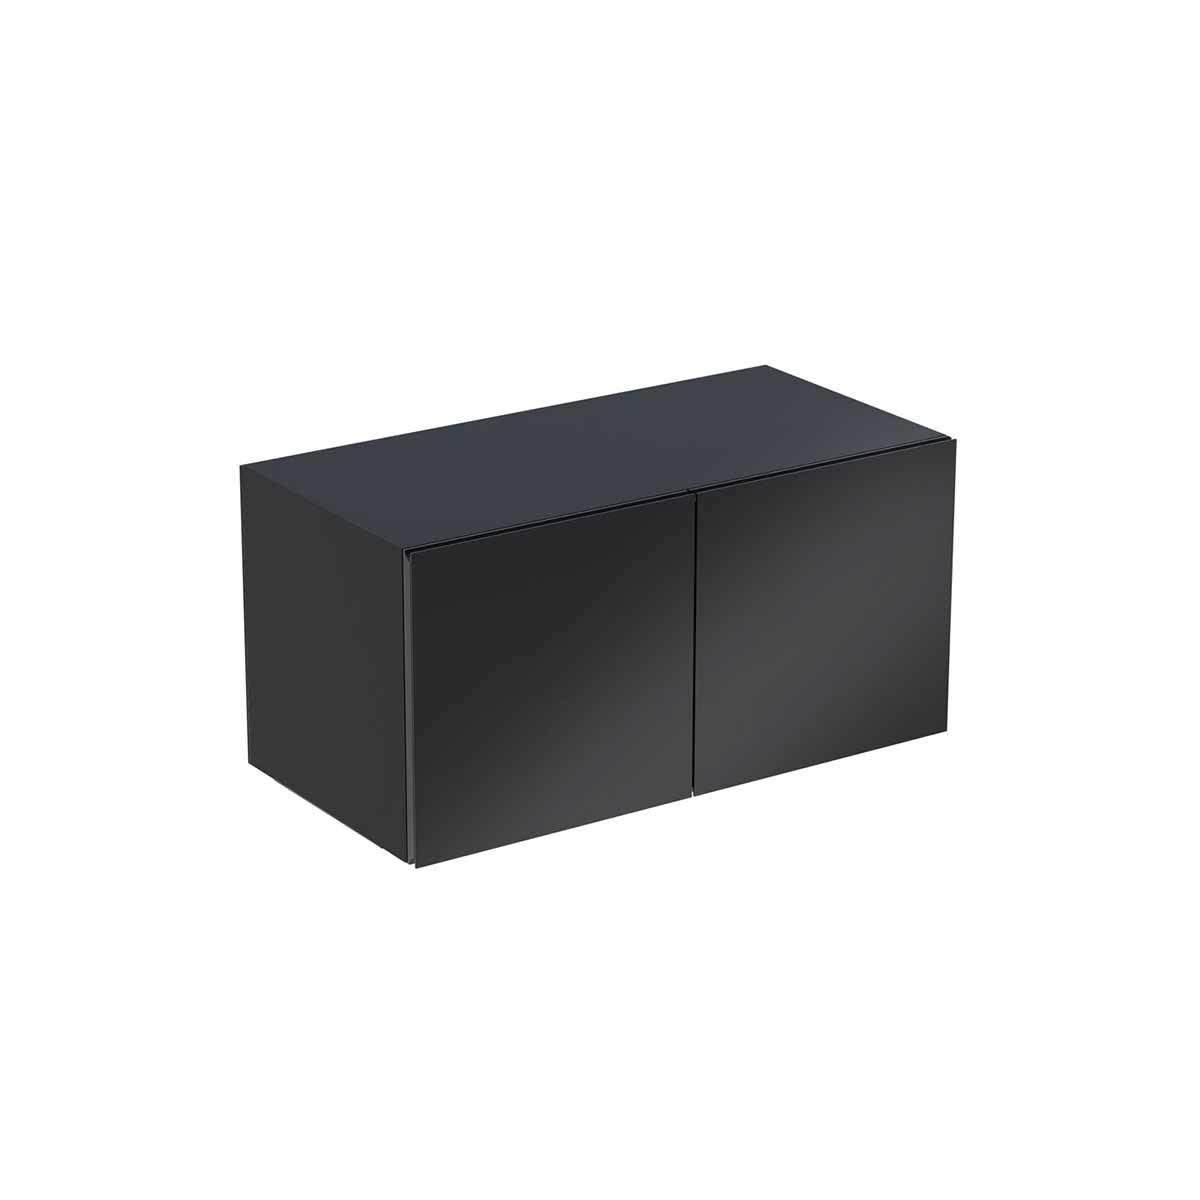 BDI Semblance 15011 Double-width Cabinet